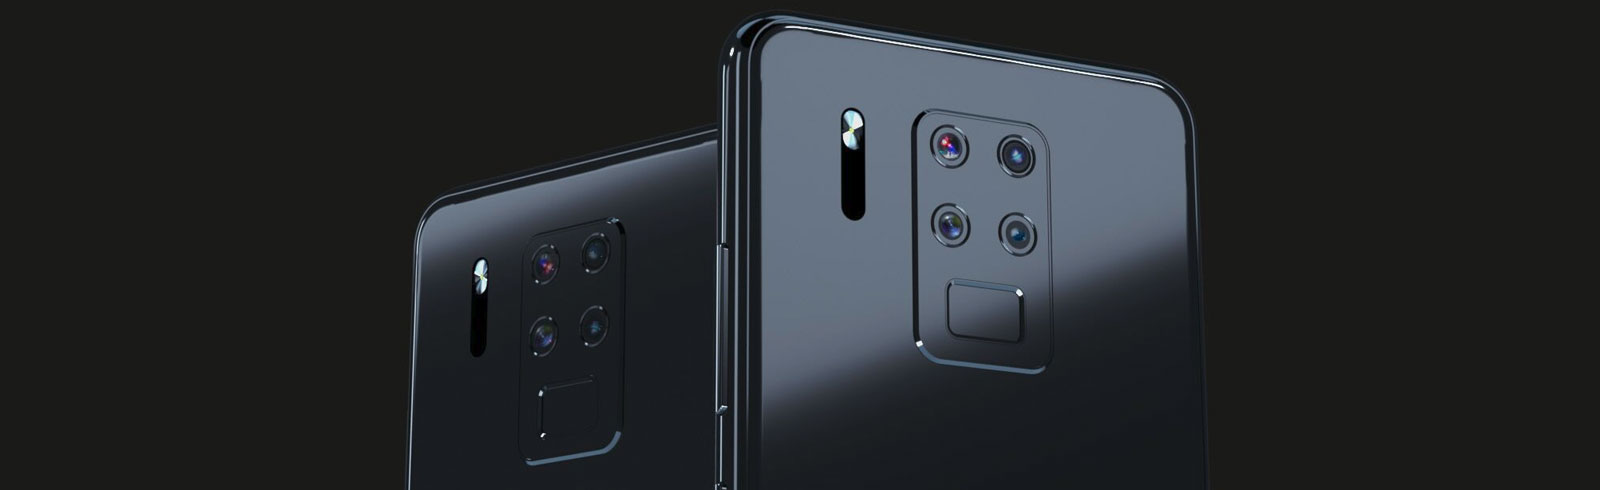 Oukitel C18 Pro with quad cameras will be launched on April 20